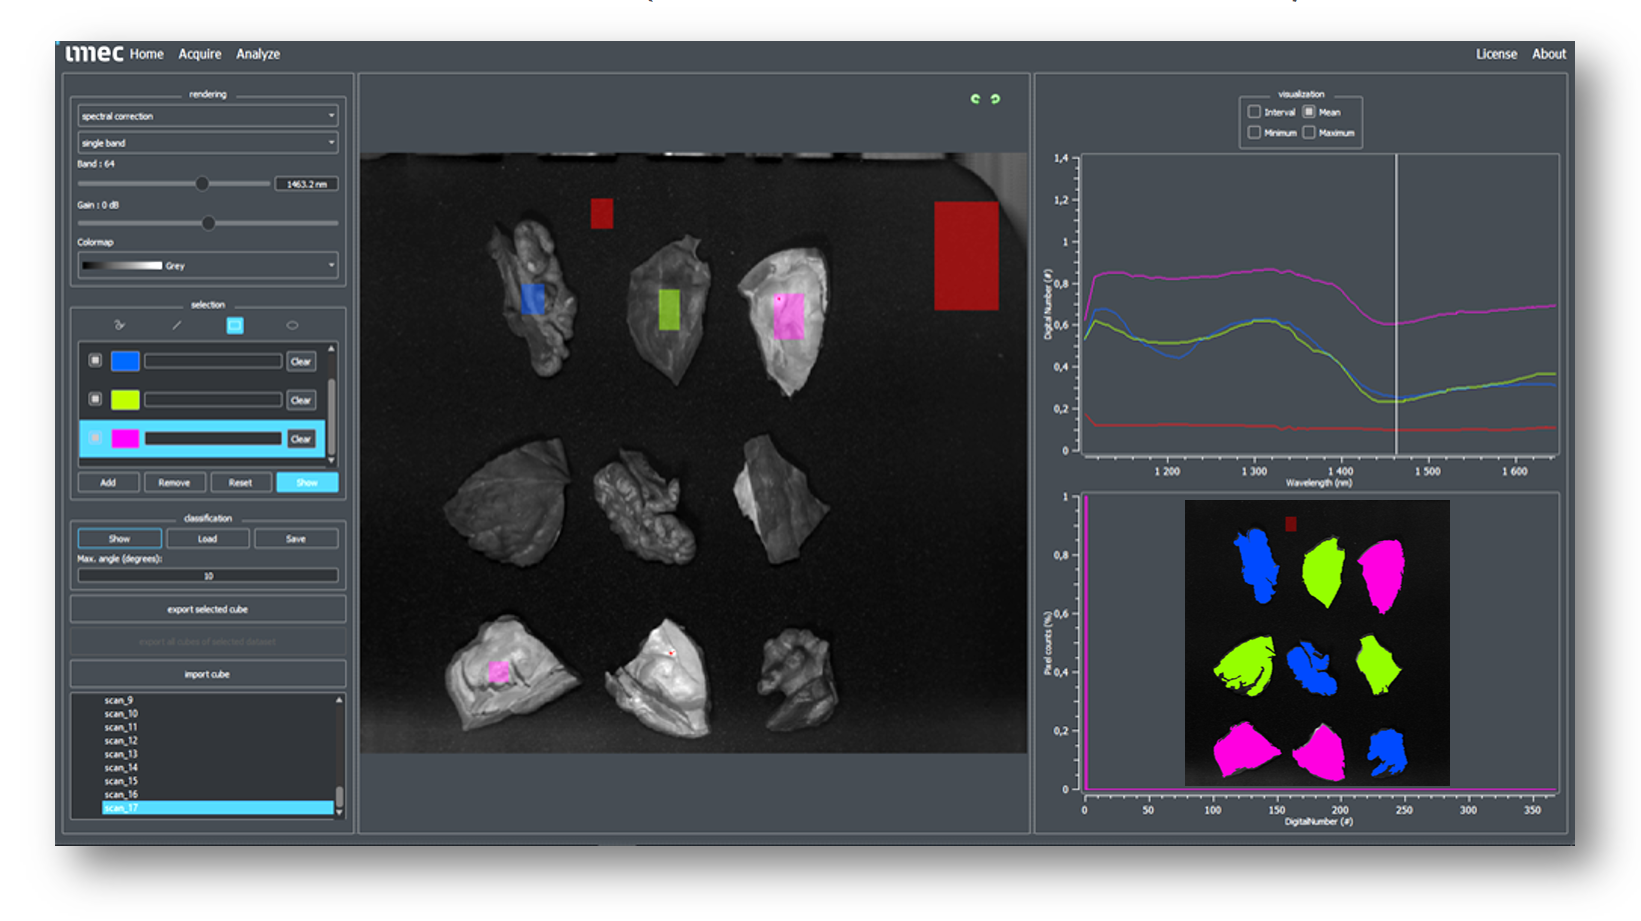 Hyperspectral imaging in SWIR range